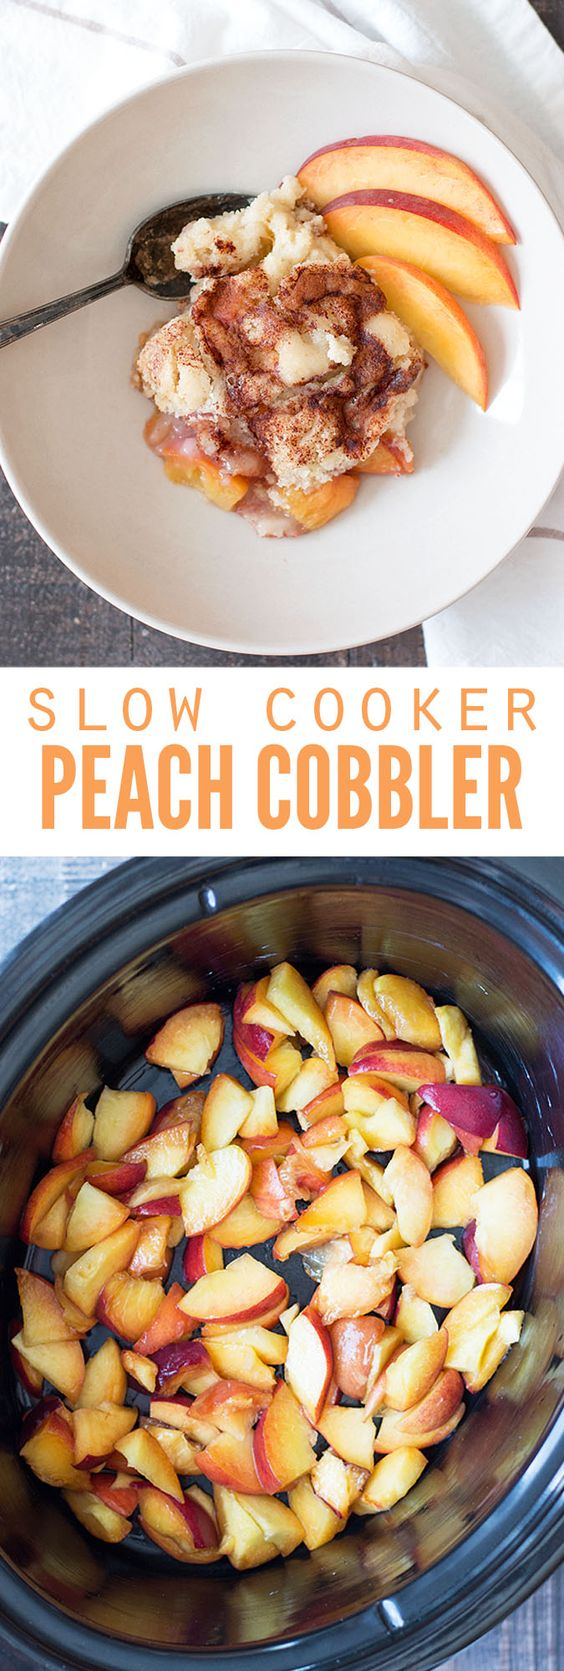 This slow cooker peach cobbler was created after the peach cobbler dump cake, except this version is so much healthier! Using fresh peaches and homemade yellow cake mix, I'm proud to take this to any potlock! :: DontWastetheCrumbs.com